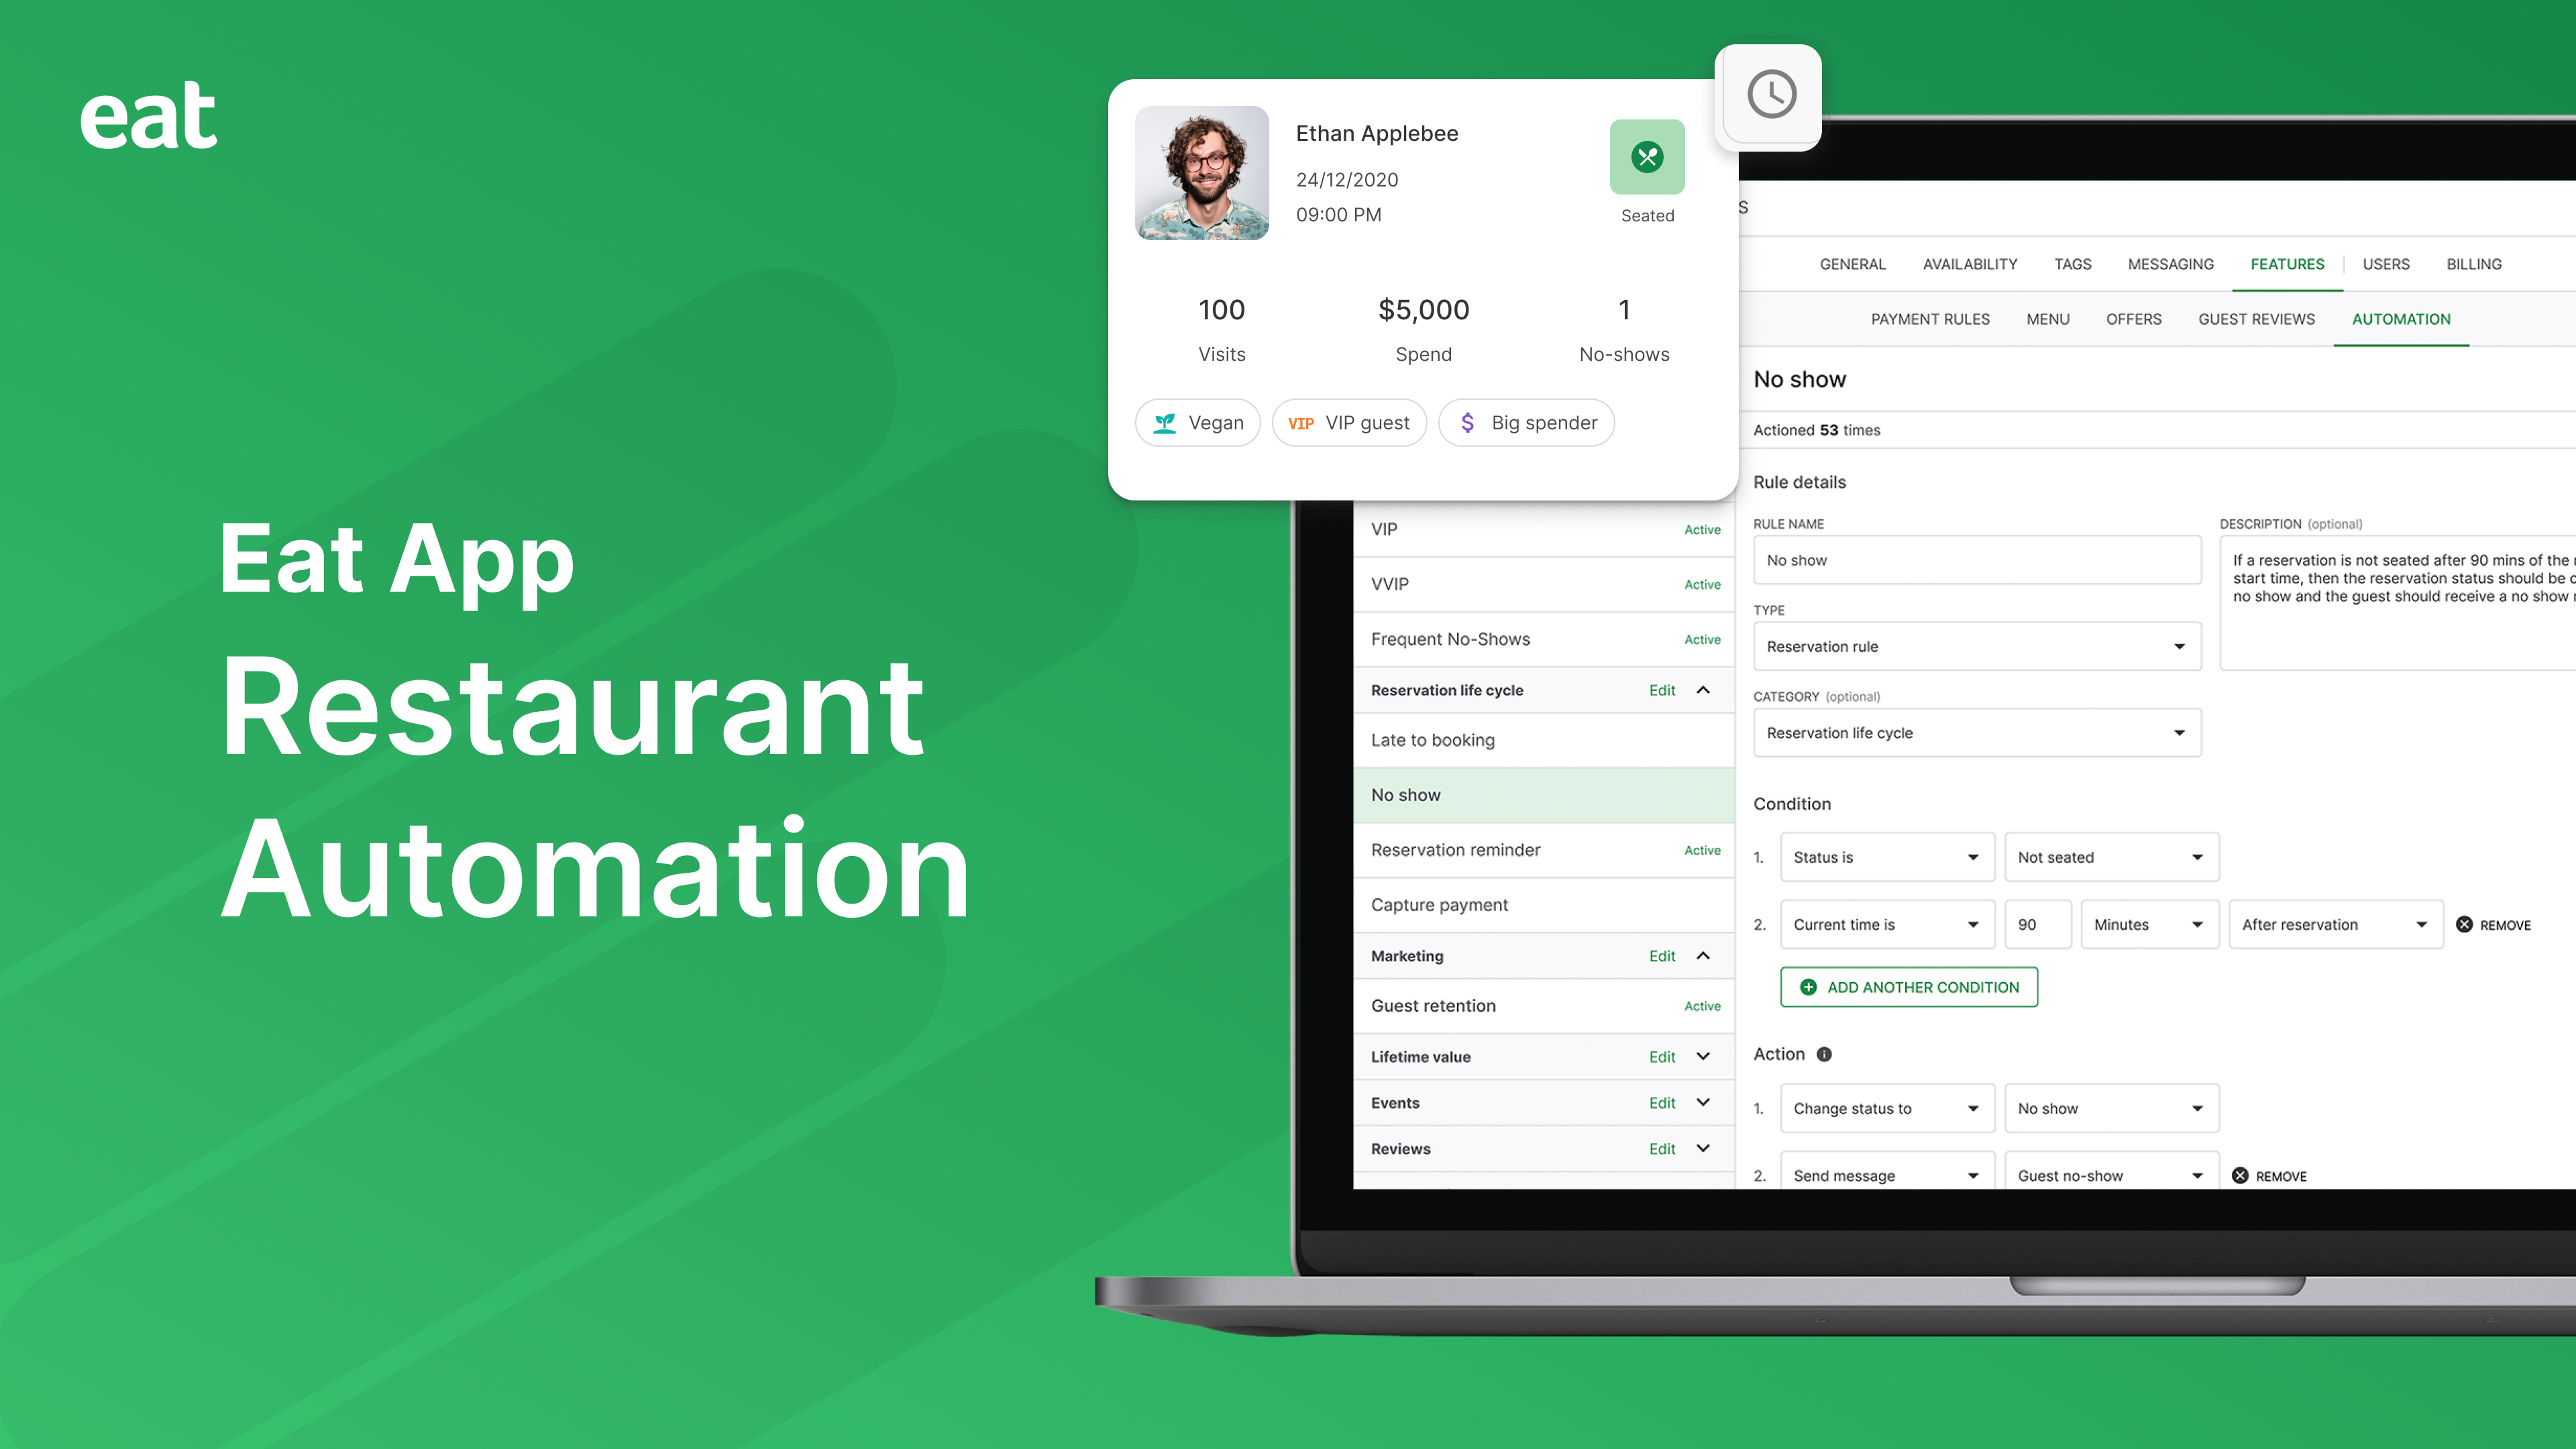 Eat App's restaurant automation